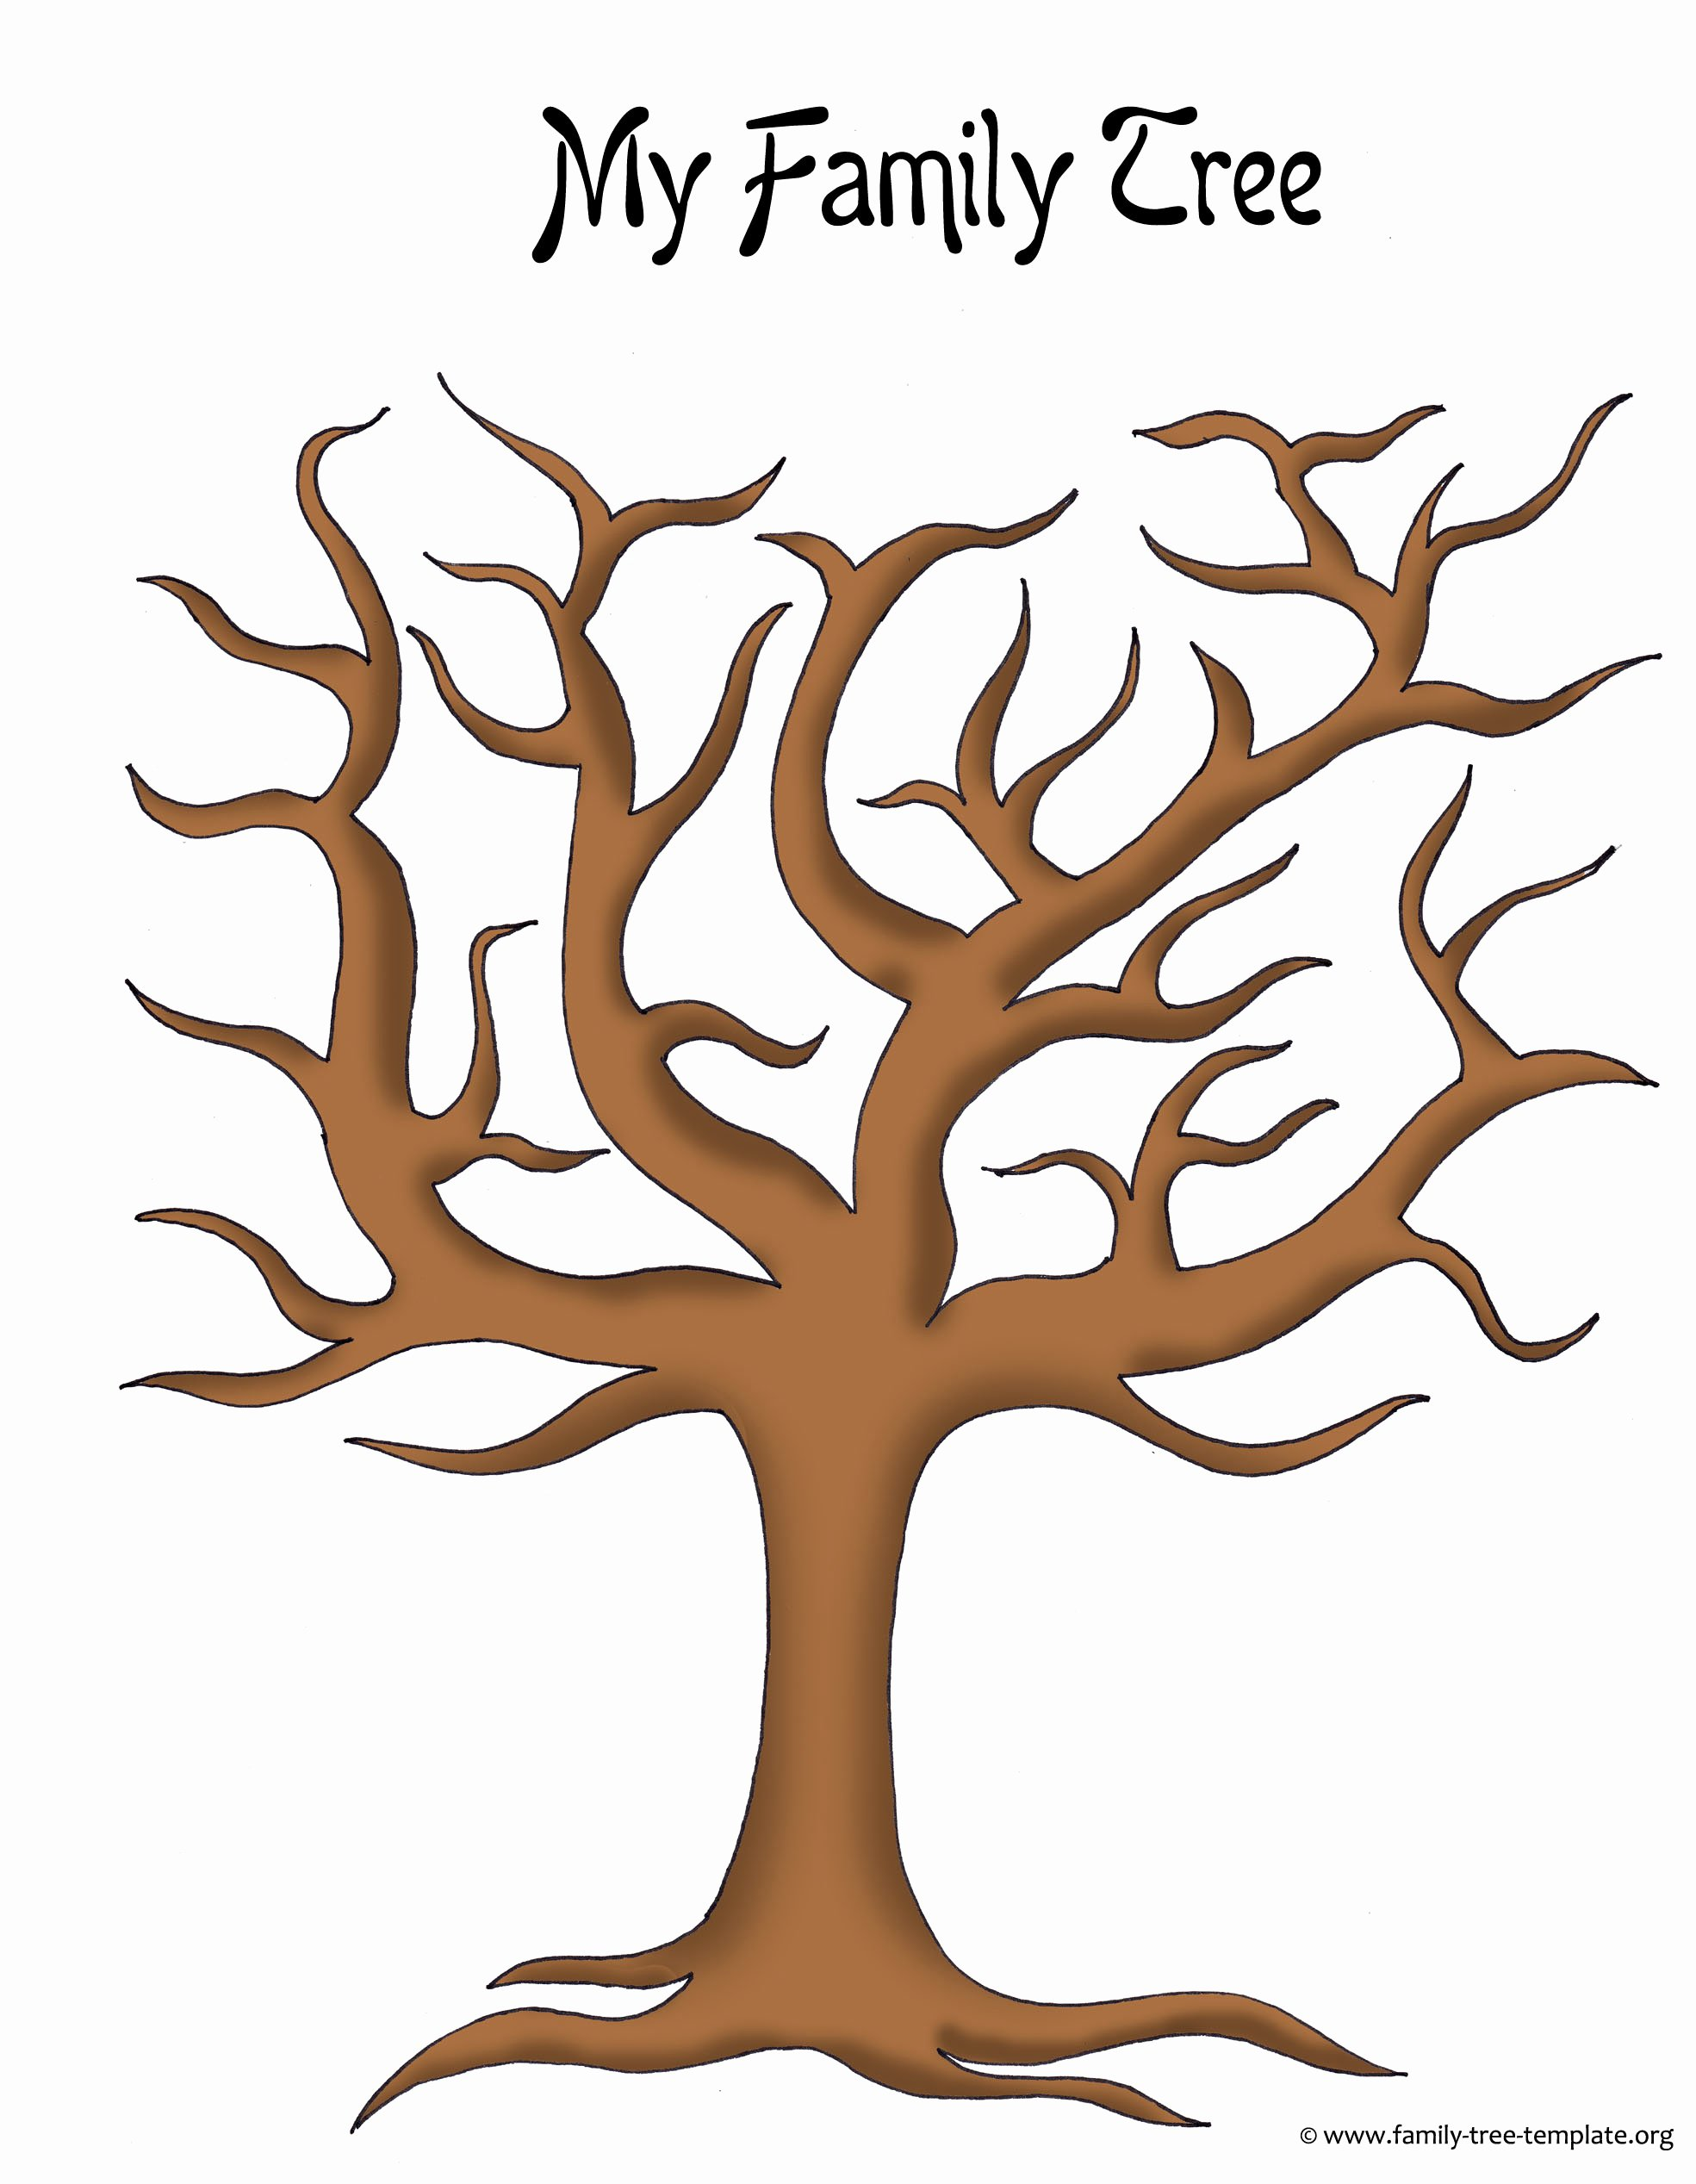 Free Printable Tree Template Luxury Make A Family Tree Easily with these Free Ancestry Charts